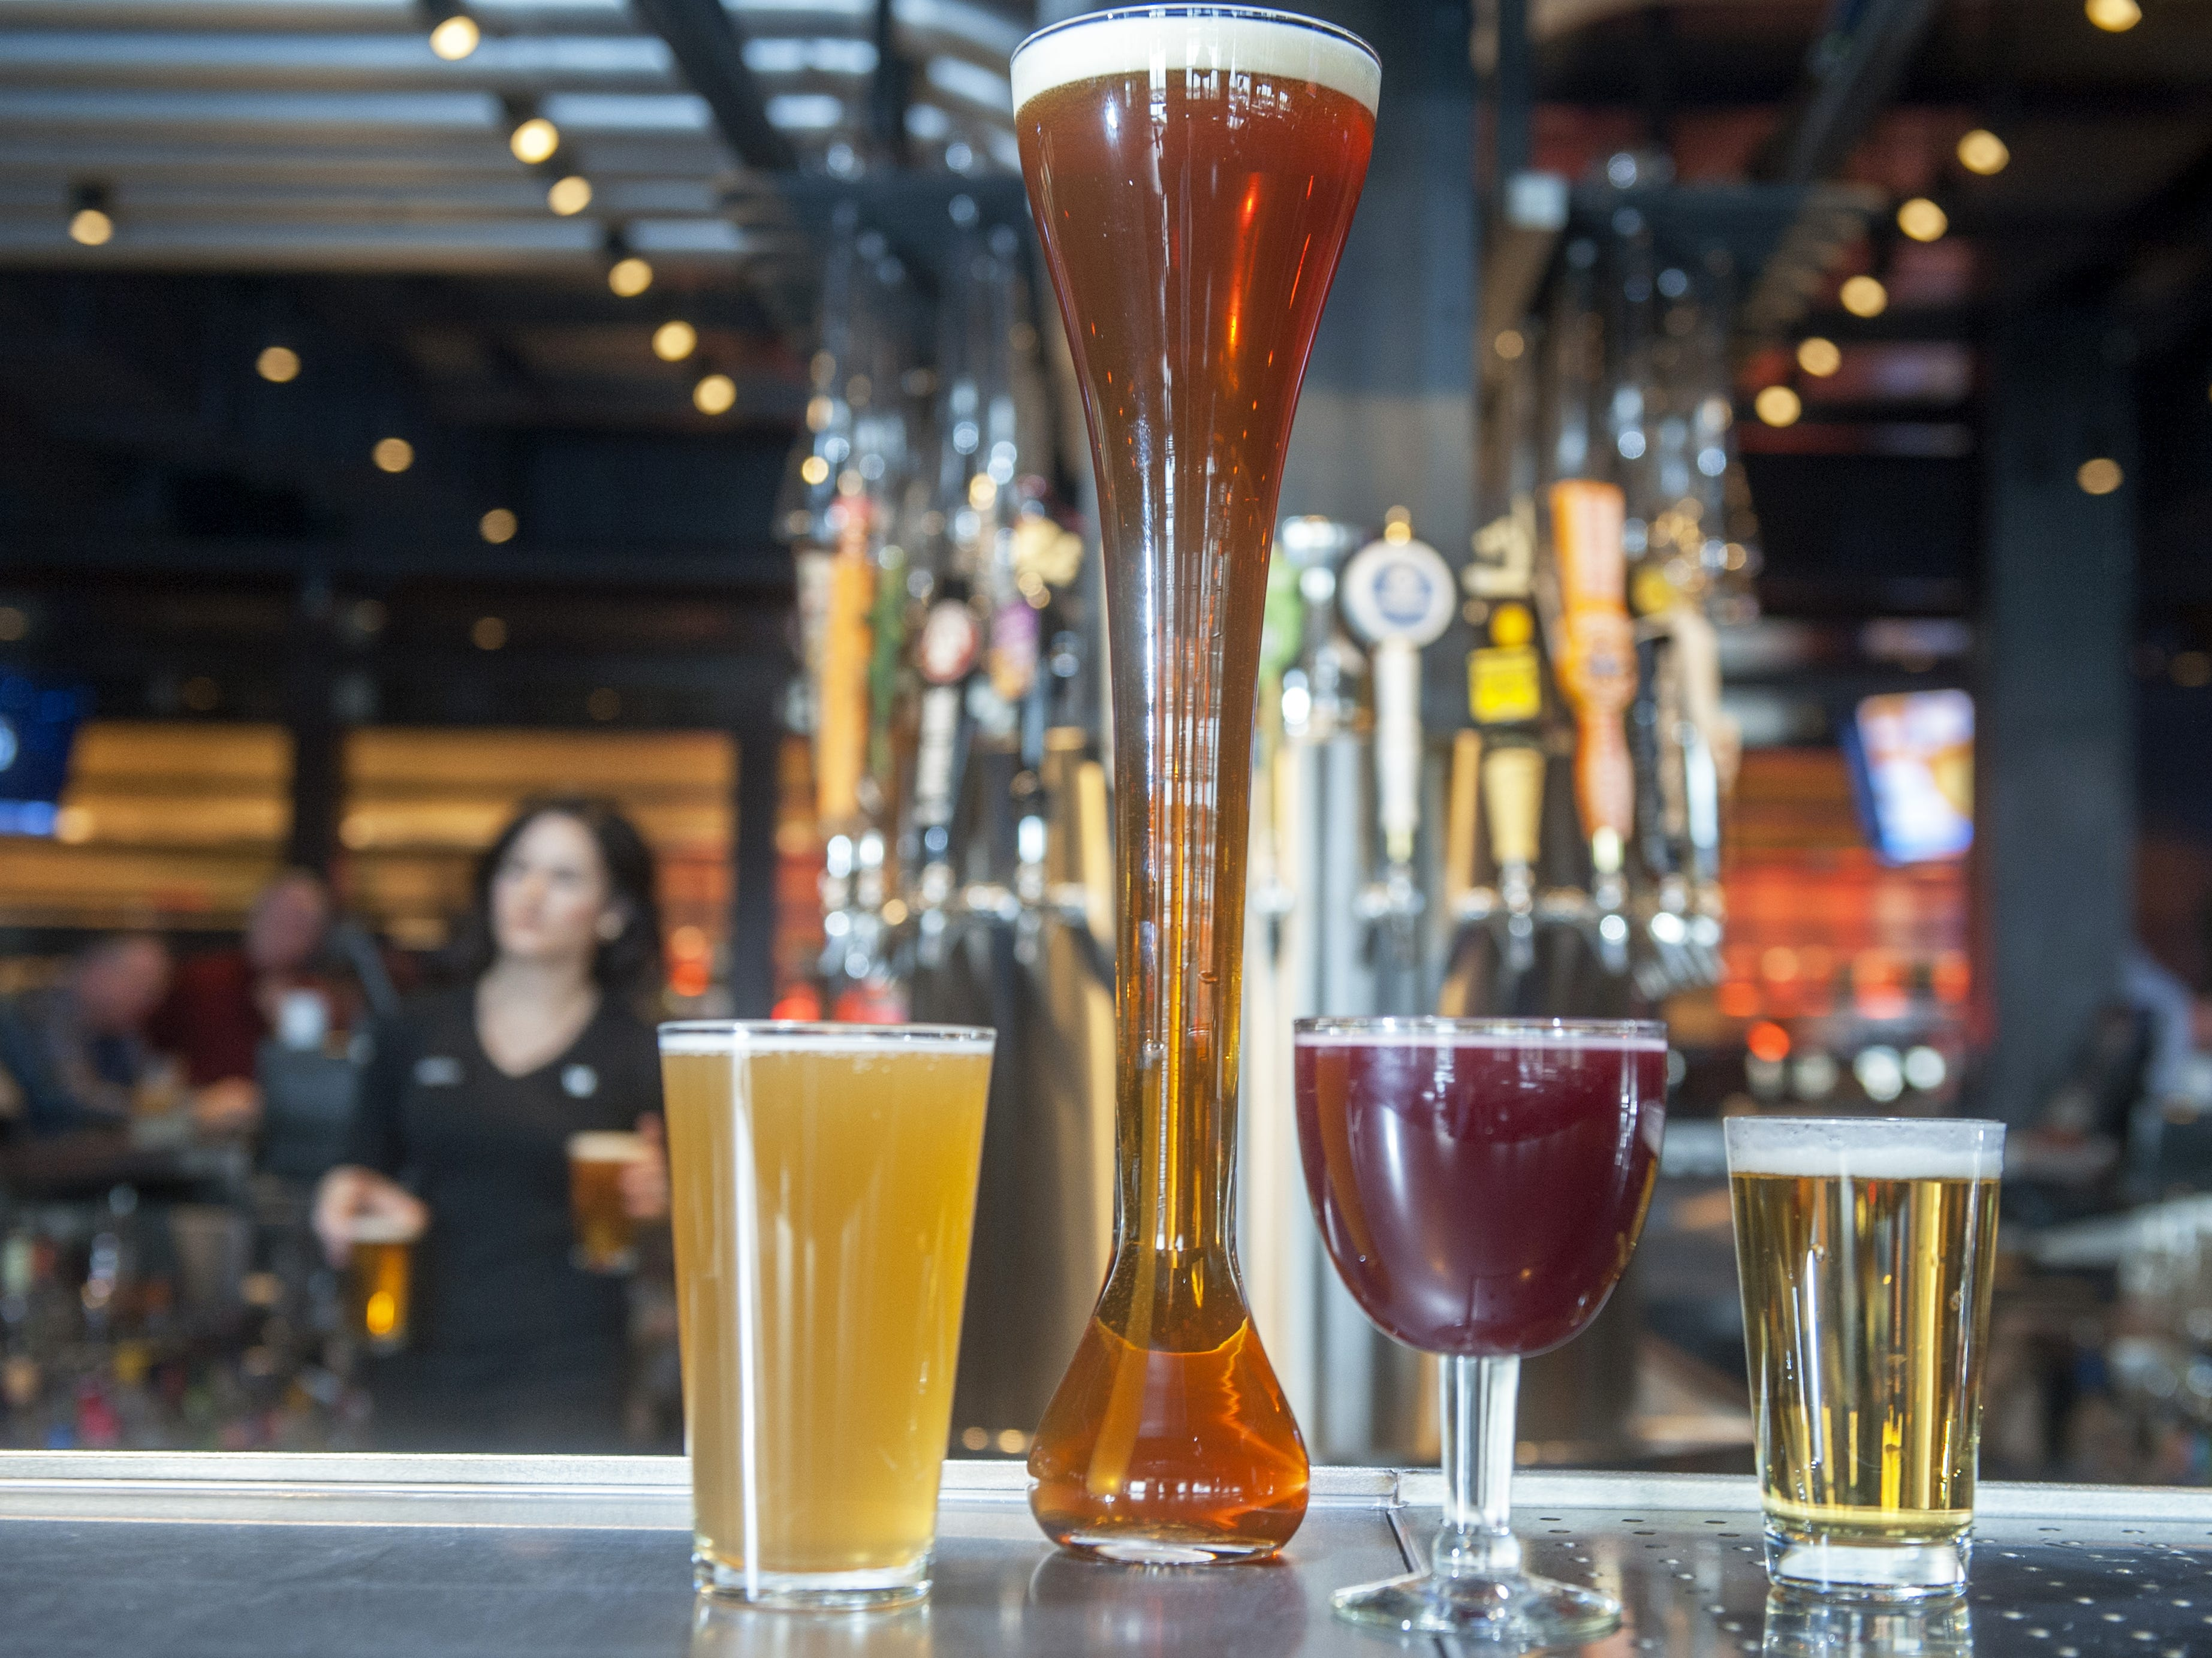 A pint of the Yard House's house white ale, a half yard of the Yard House's house IPA, a goblet of Lindemans Framboise, and a 9-ounce shorty of Stella Artois at Yard House.